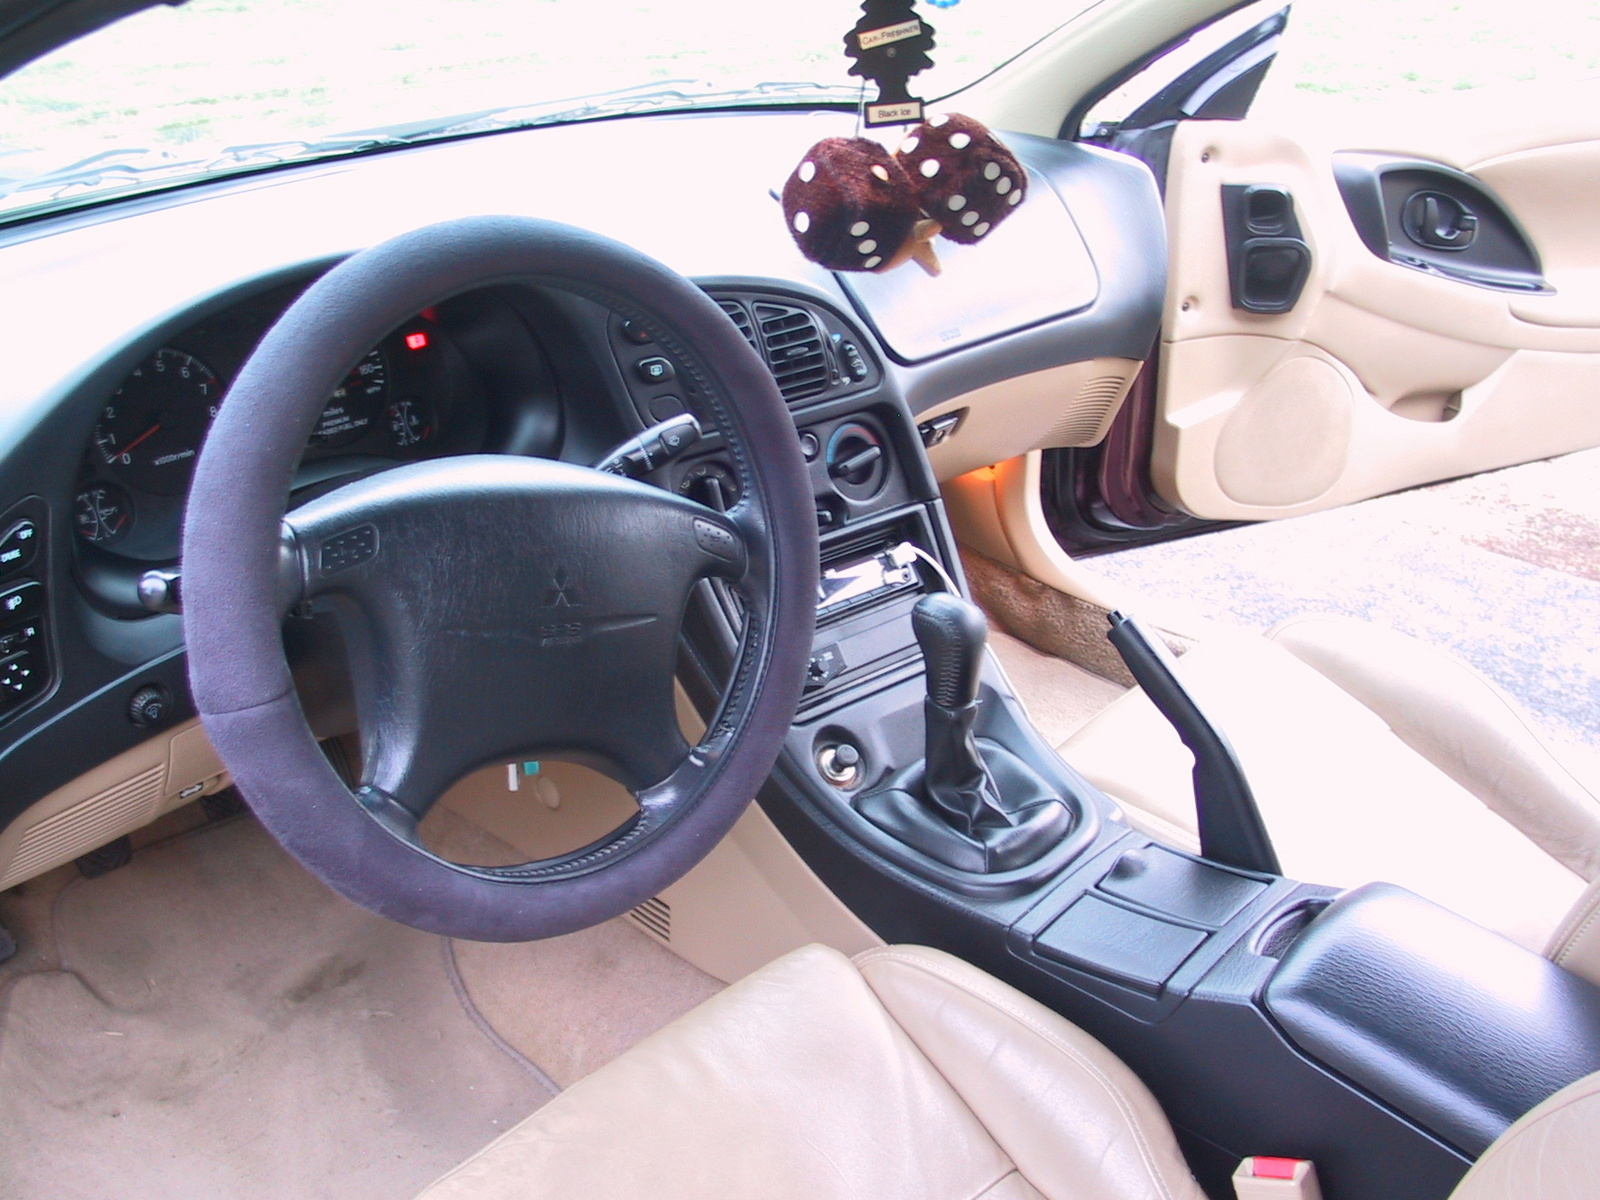 1997 mitsubishi eclipse spyder interior pictures cargurus. Black Bedroom Furniture Sets. Home Design Ideas